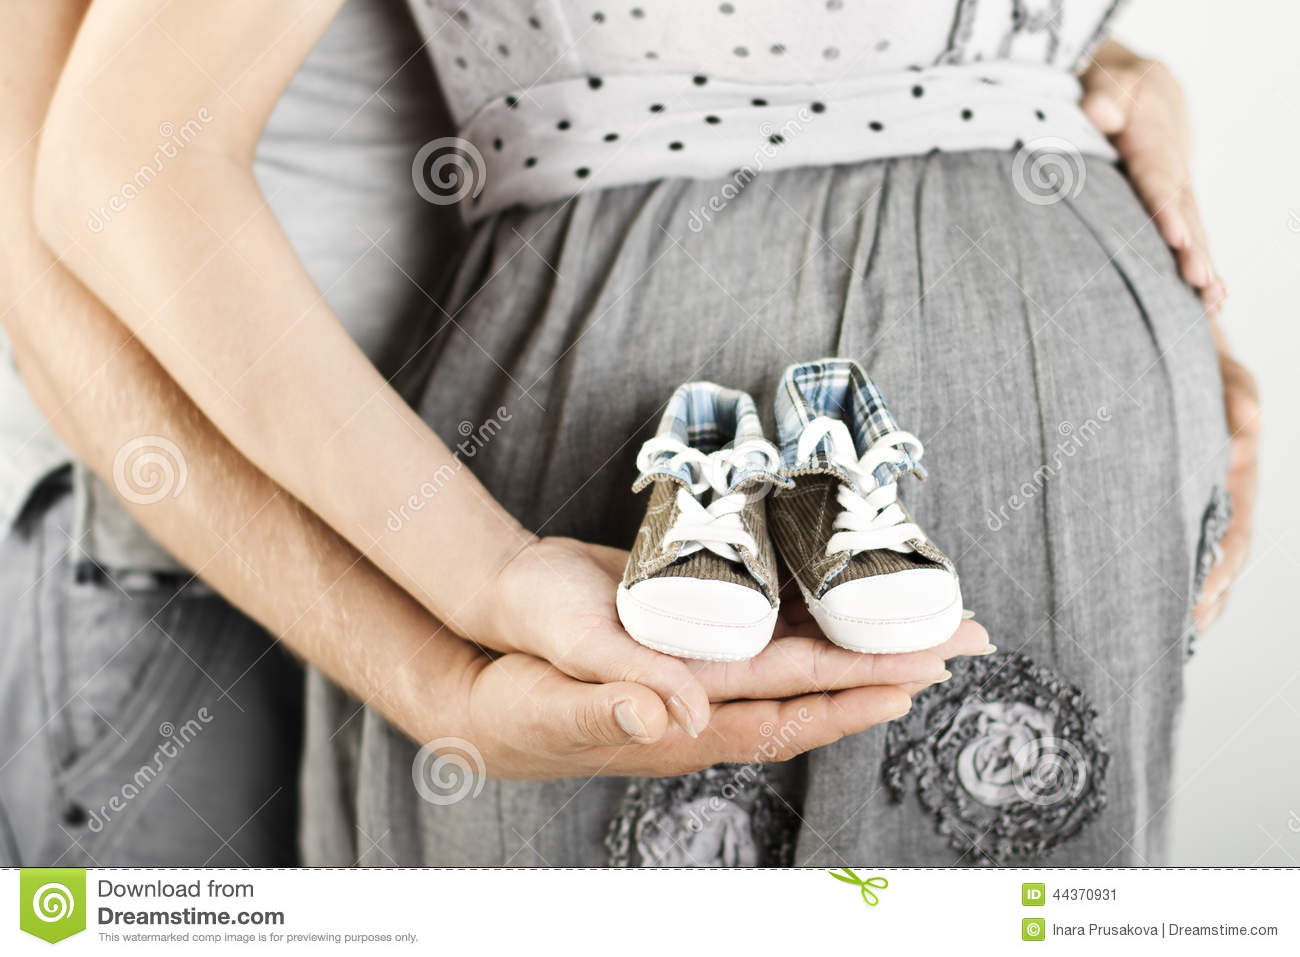 Newborn baby booties in parents hands, Pregnant woman belly